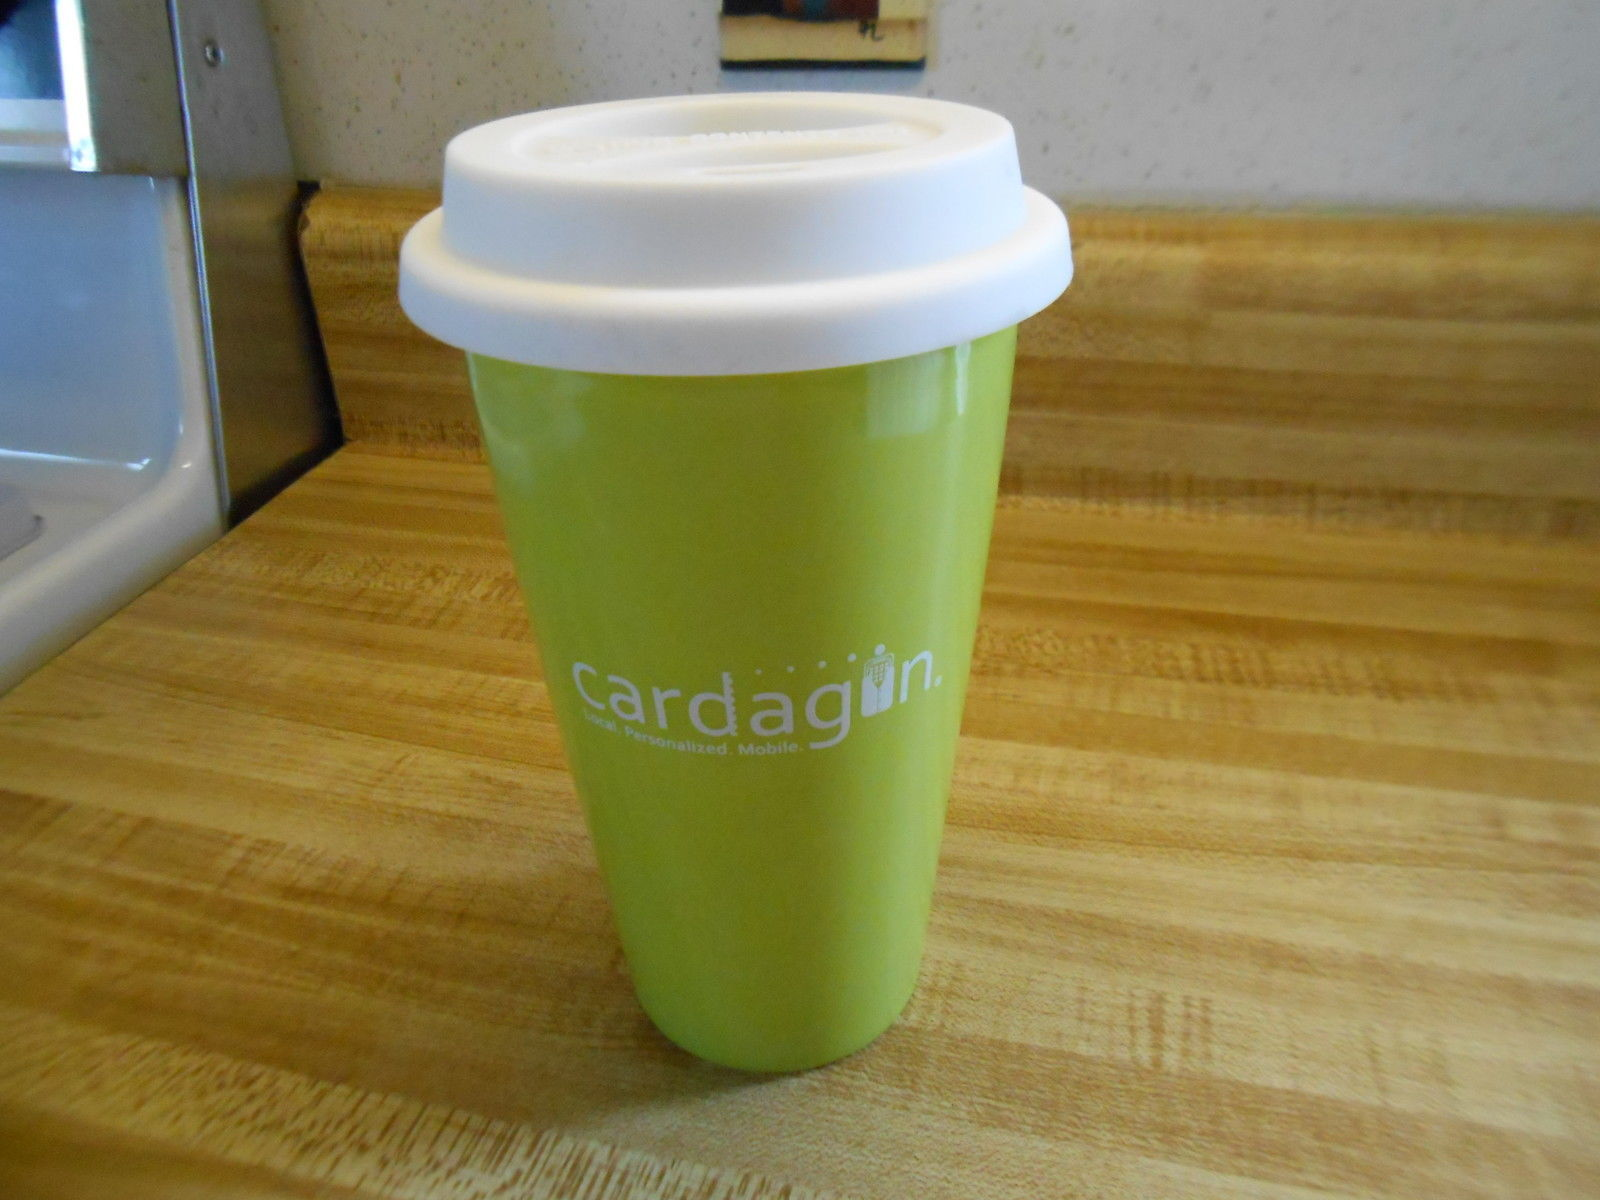 "Primary image for Travel mug ~ ceramic travel mug with flexible cover top says ""Cardagun"" on it"